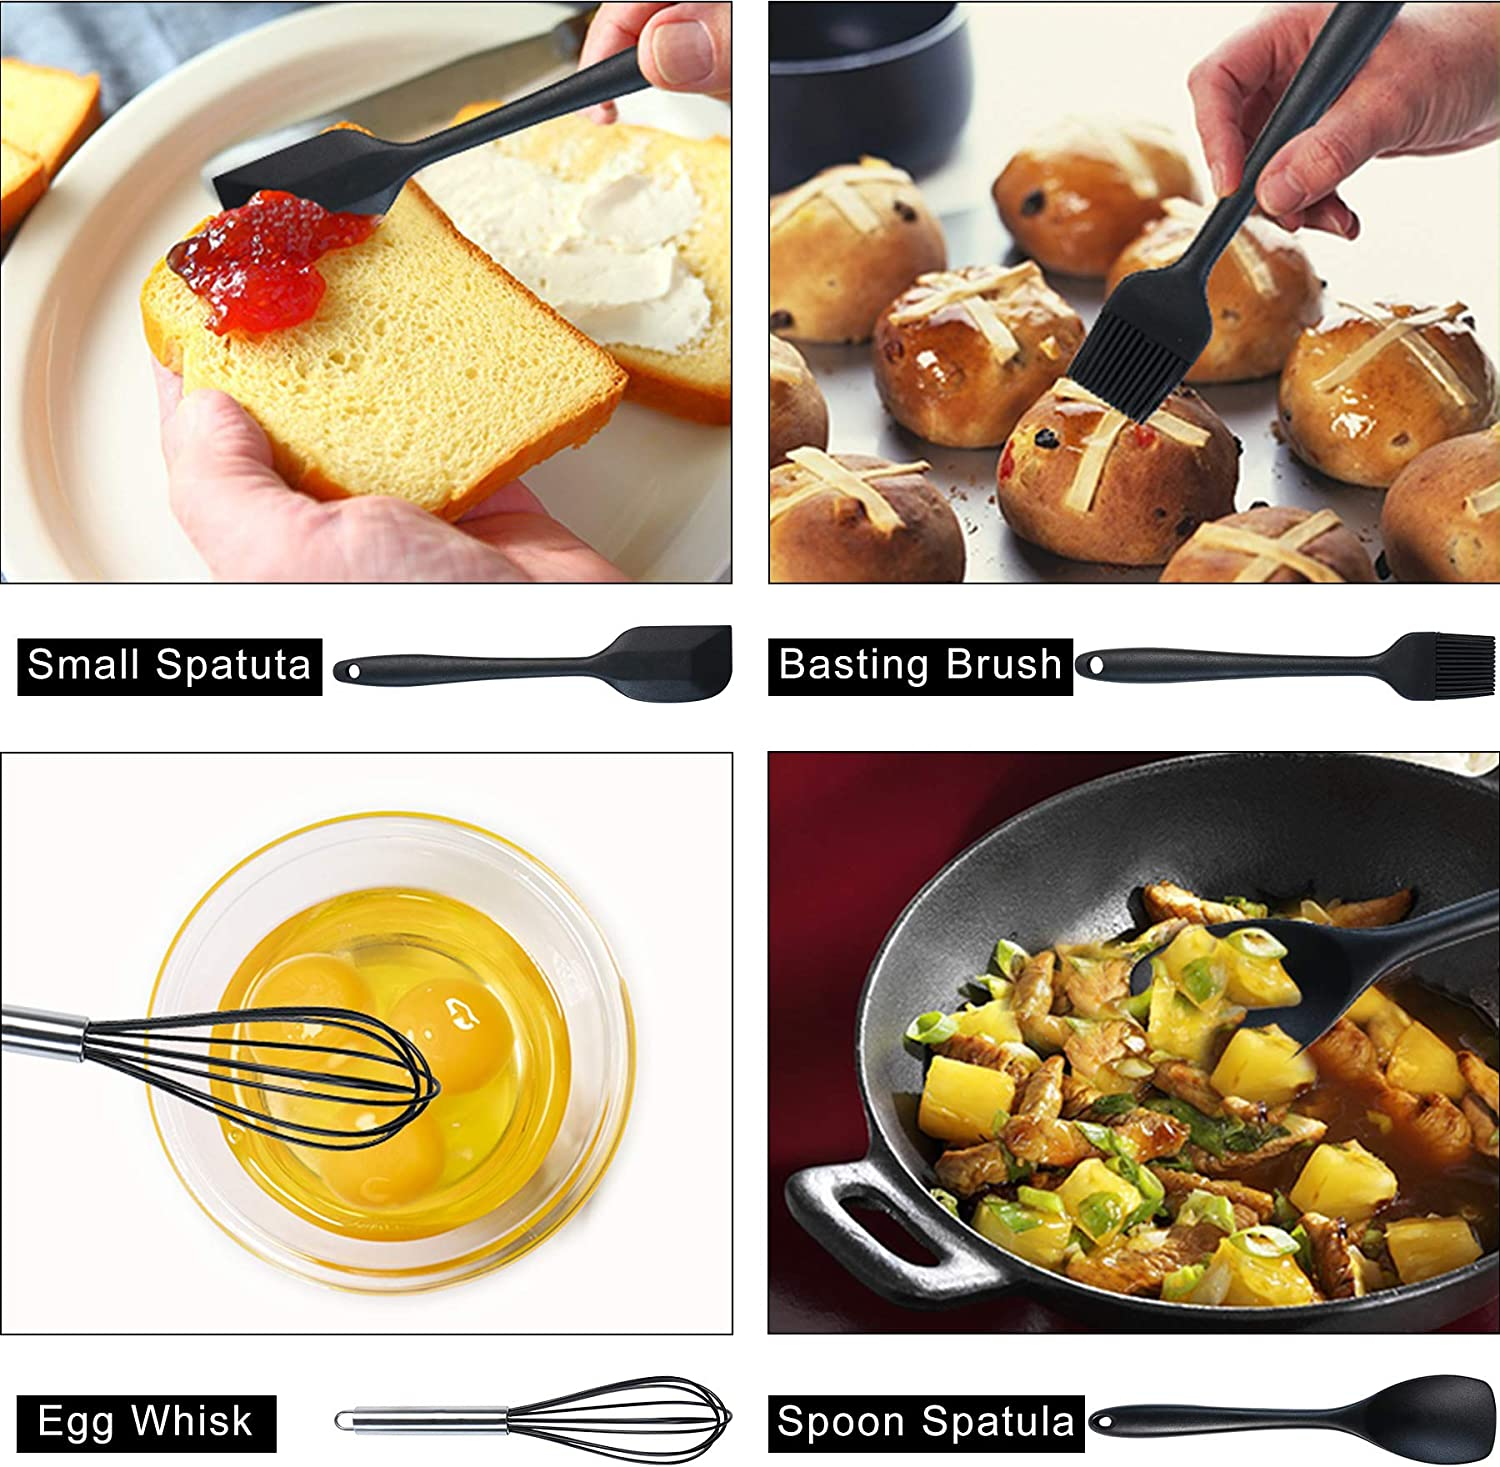 Silicone Kitchen Utensils JXFSSY Kitchen Utensil Set 16pcs Silicone Cooking Utensils Set Cooking Tools Turner Tongs Nonstick Spatula Spoon for Nonstick Heat Resistant Cookware